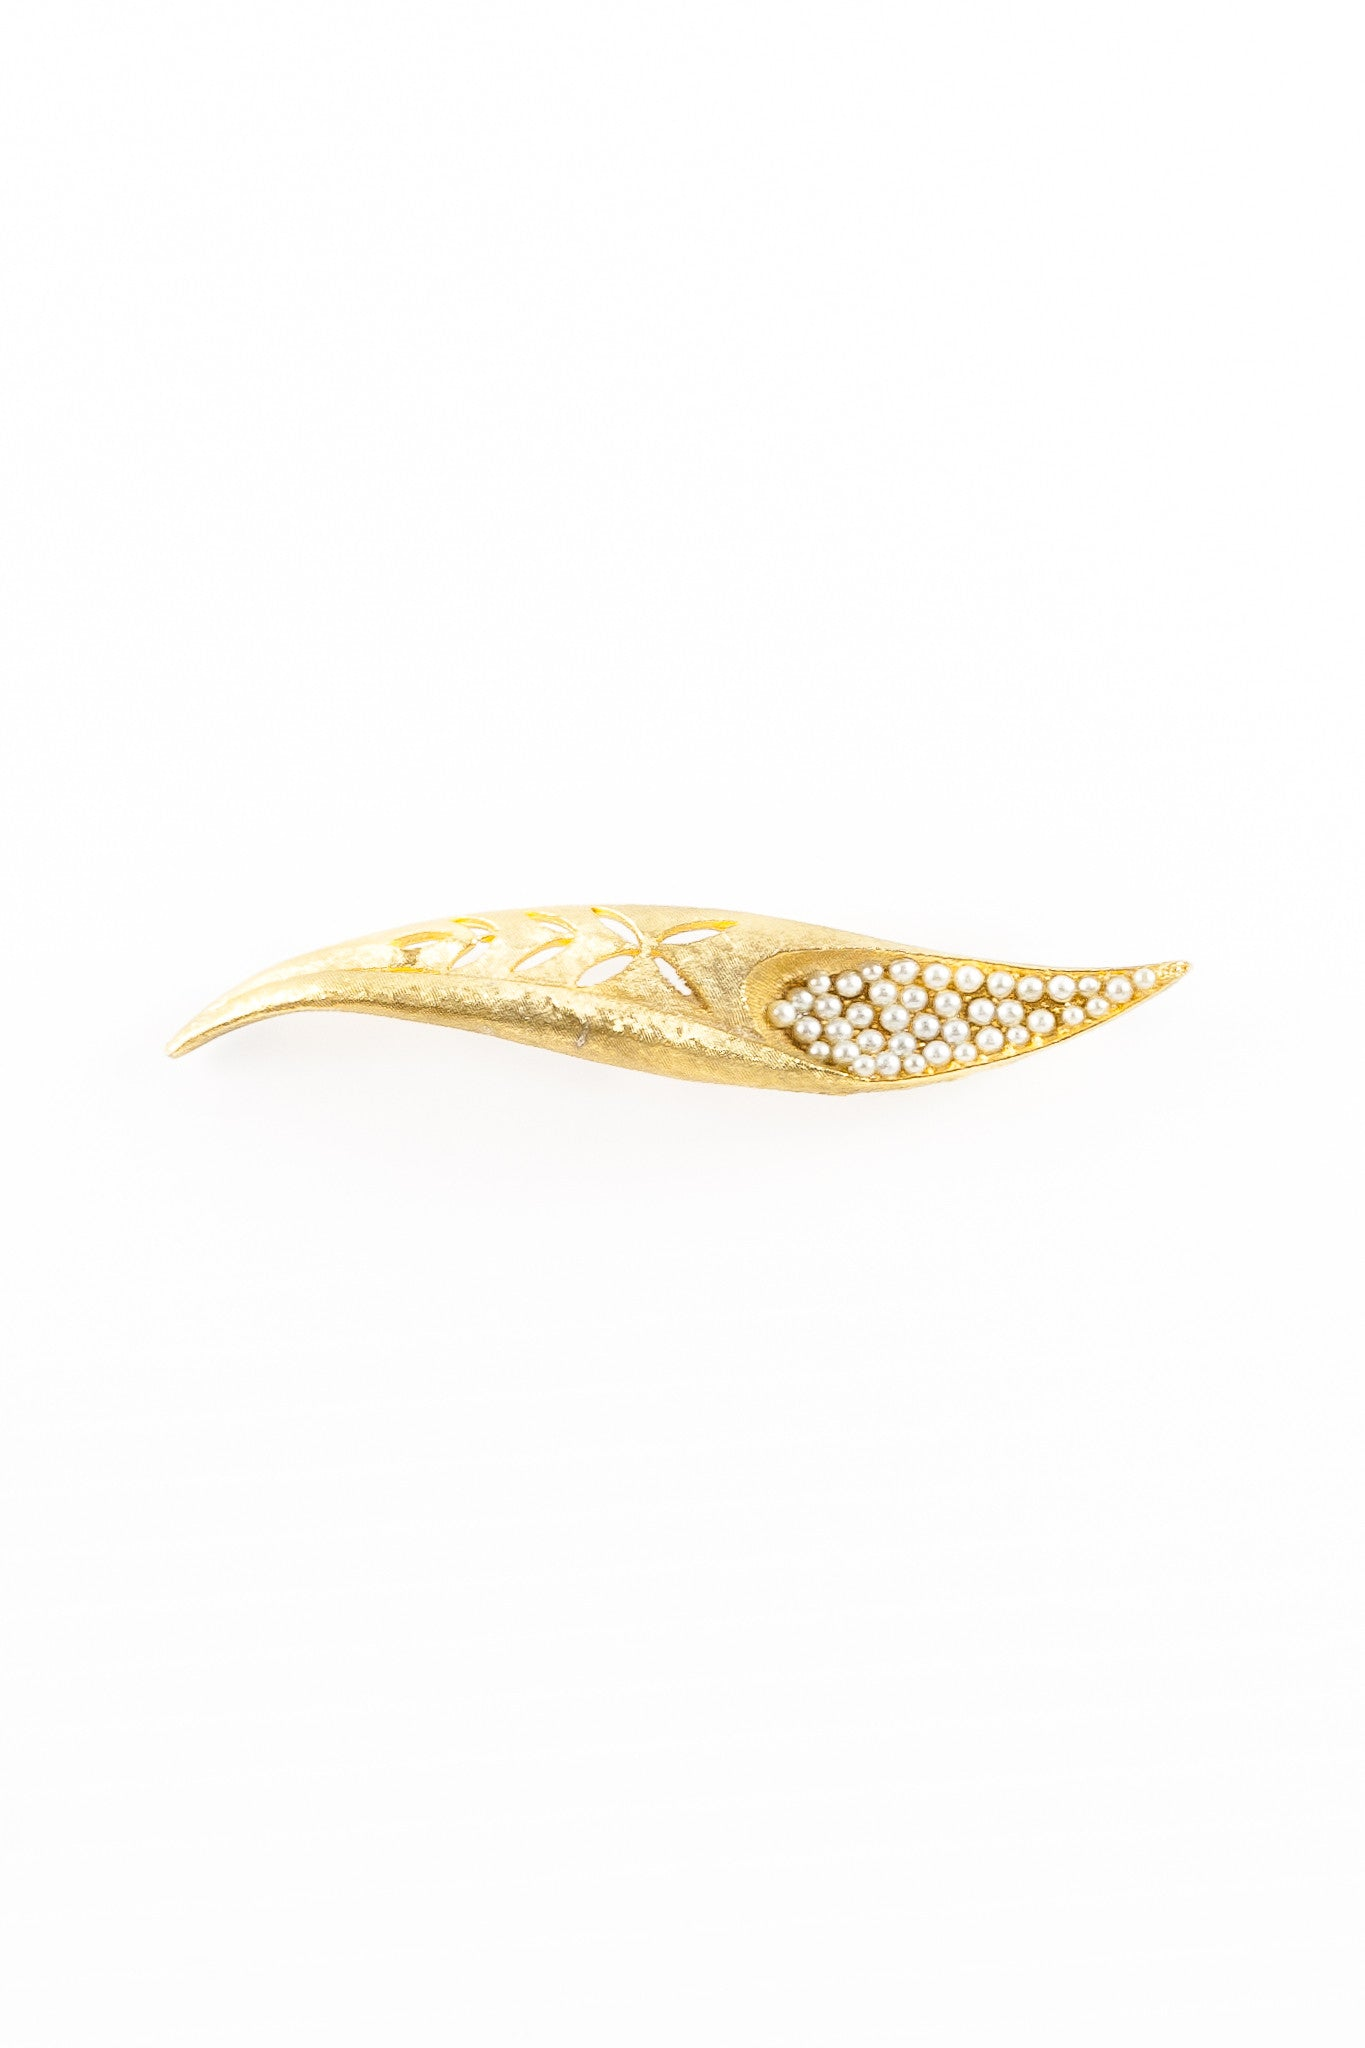 70's__Vintage__Pearl Feather Brooch